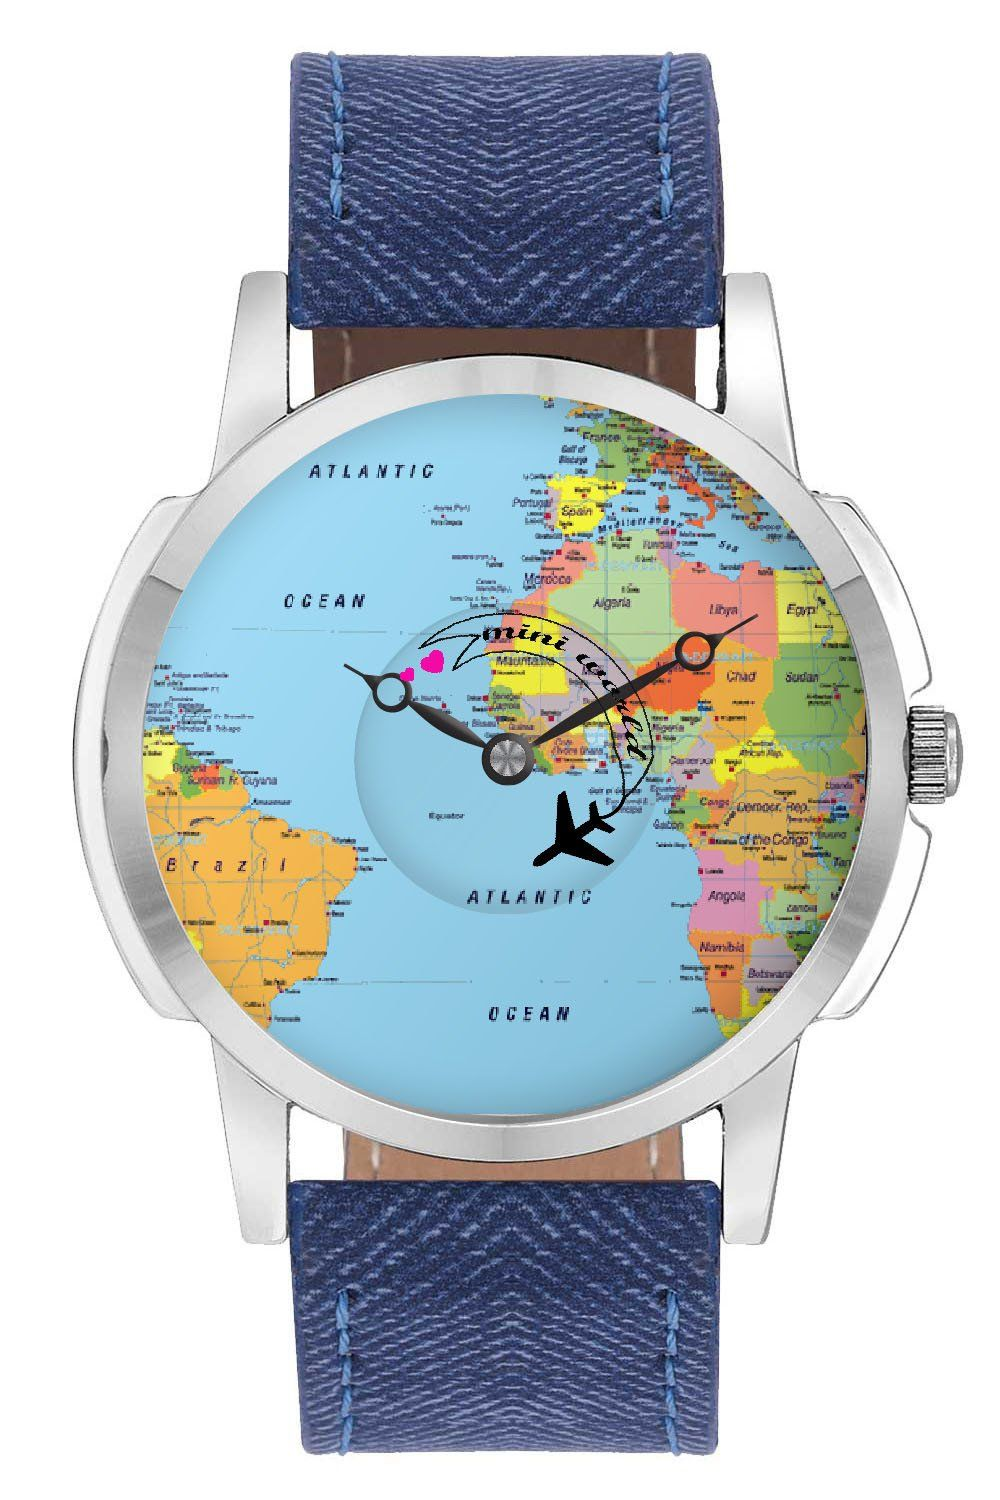 Travel watch airplane world map design leather strap casual wrist travel watch airplane world map design leather strap casual wrist watch online india gumiabroncs Choice Image